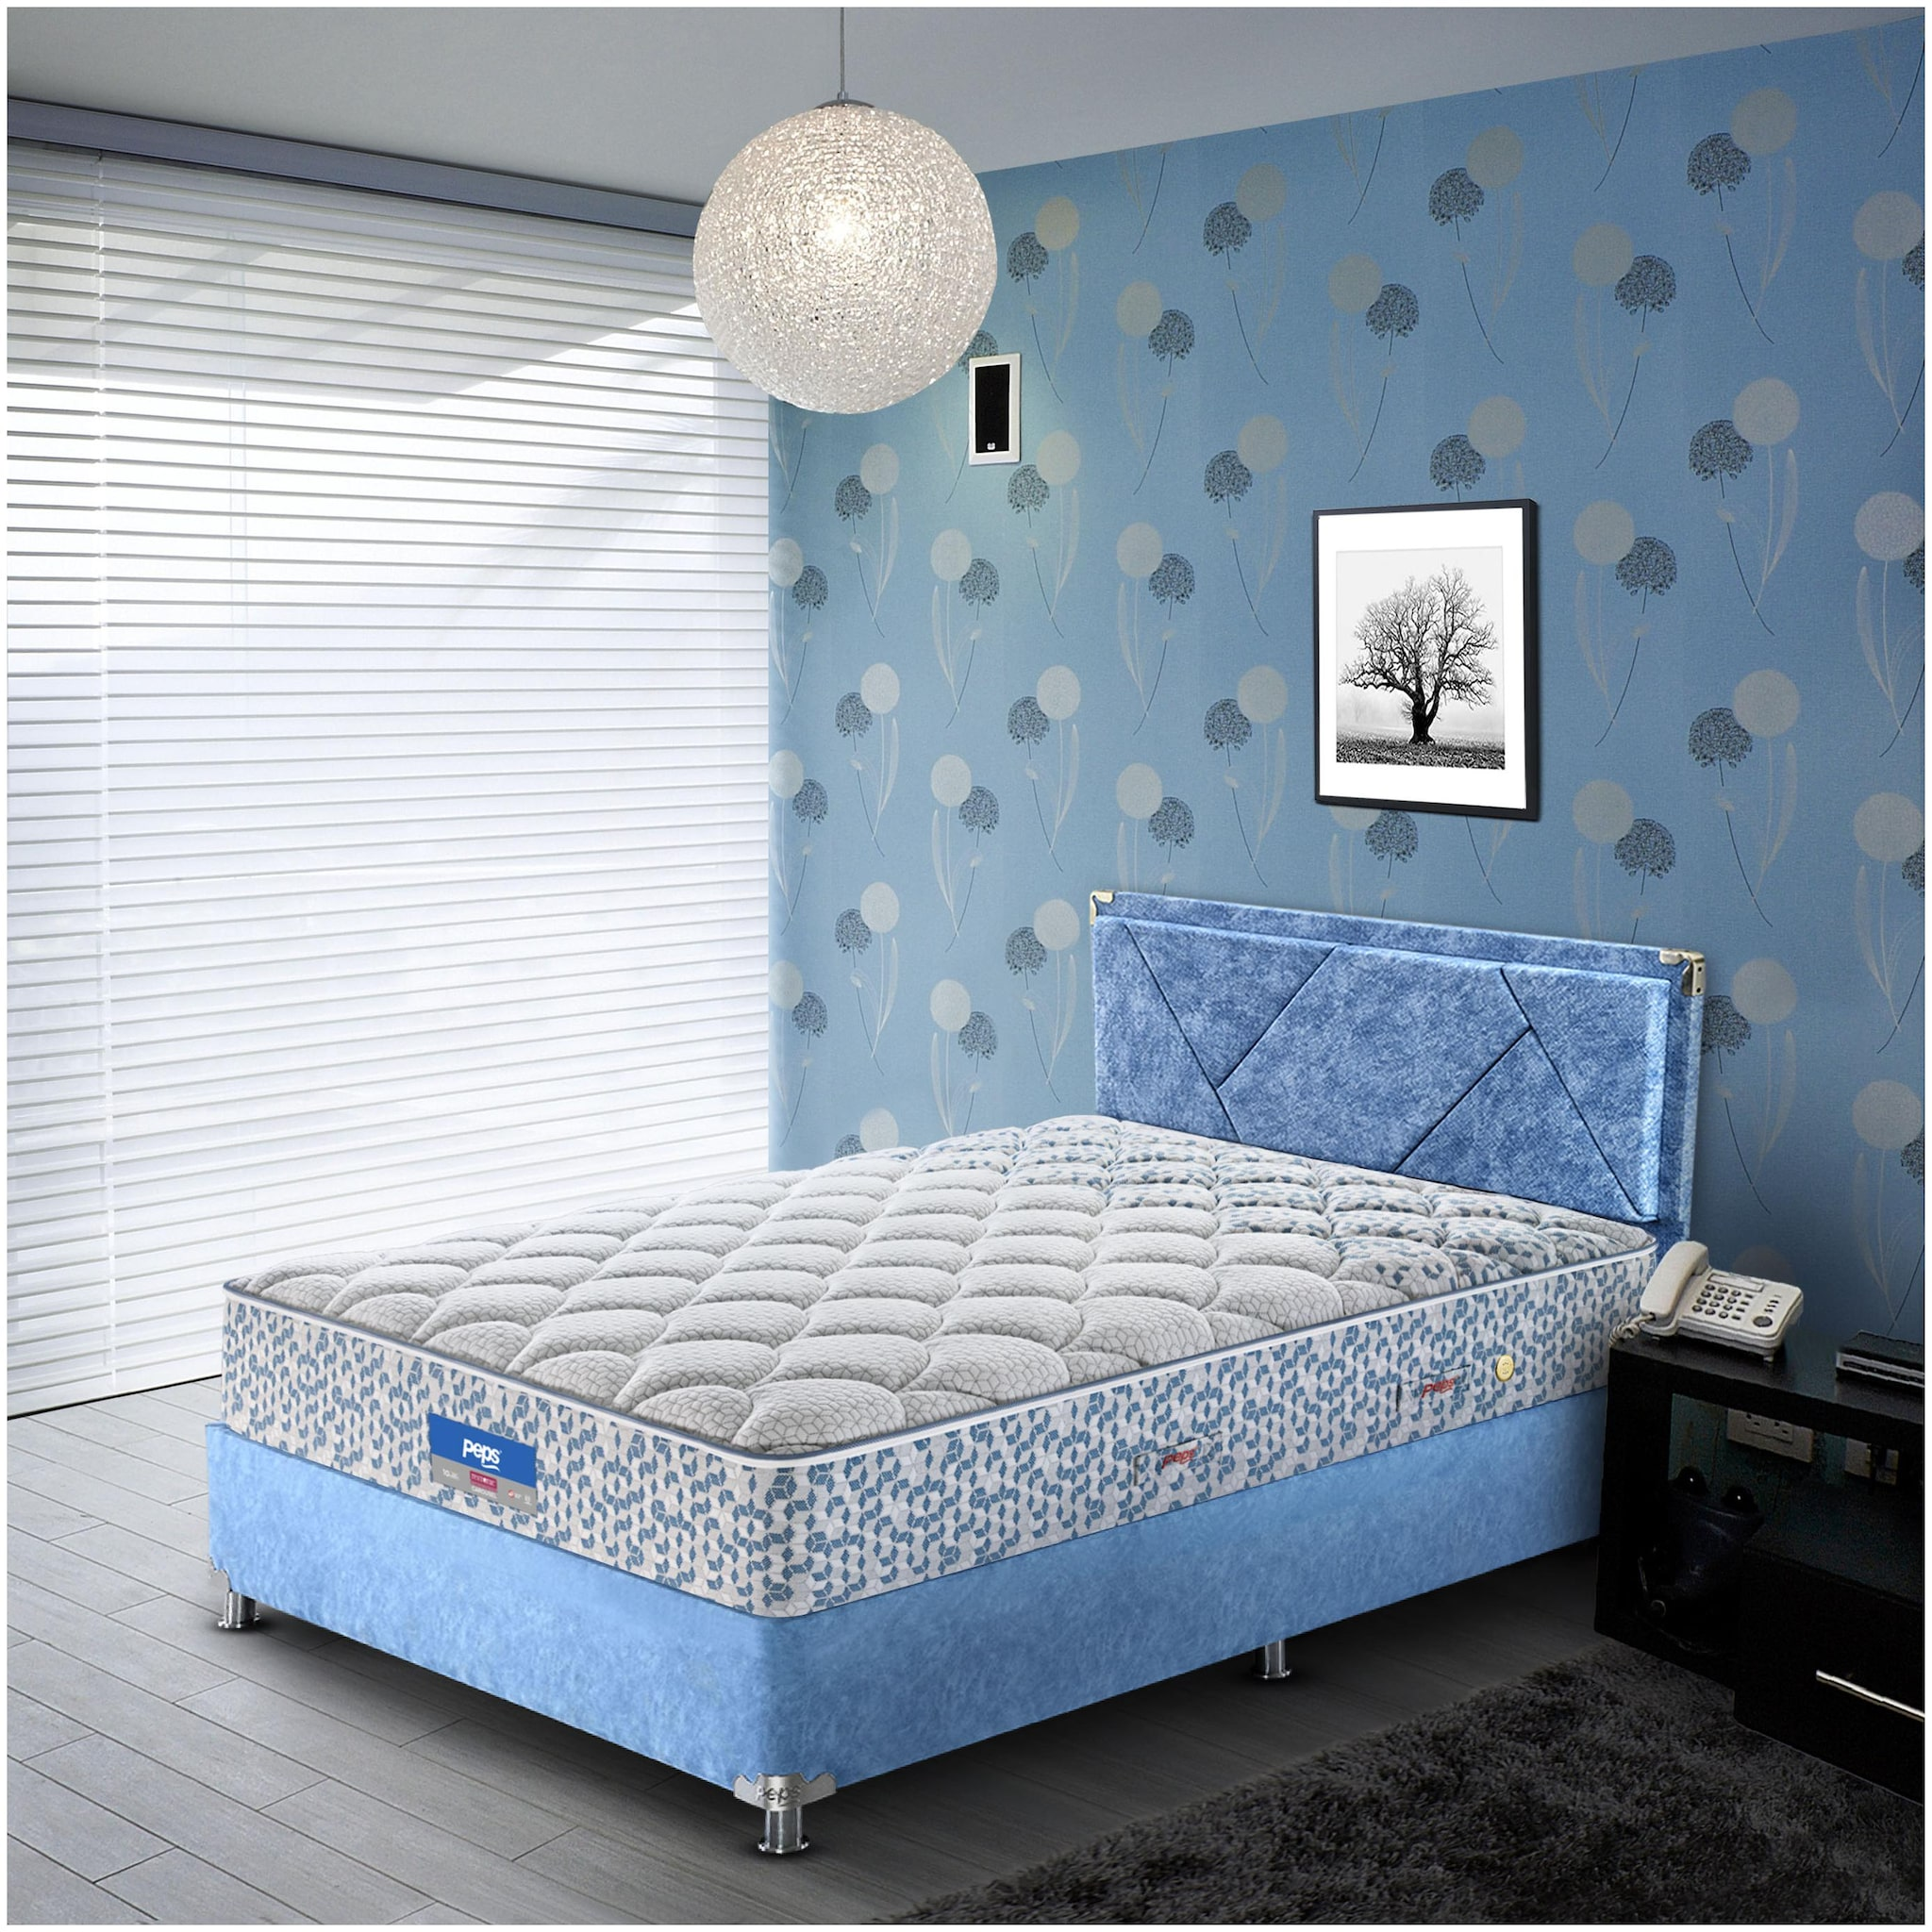 Peps Restonic Carousel Normal Top 06 inch Queen Size Pocketed Spring Mattress  Light Blue 72X60X06   by Peps Industries